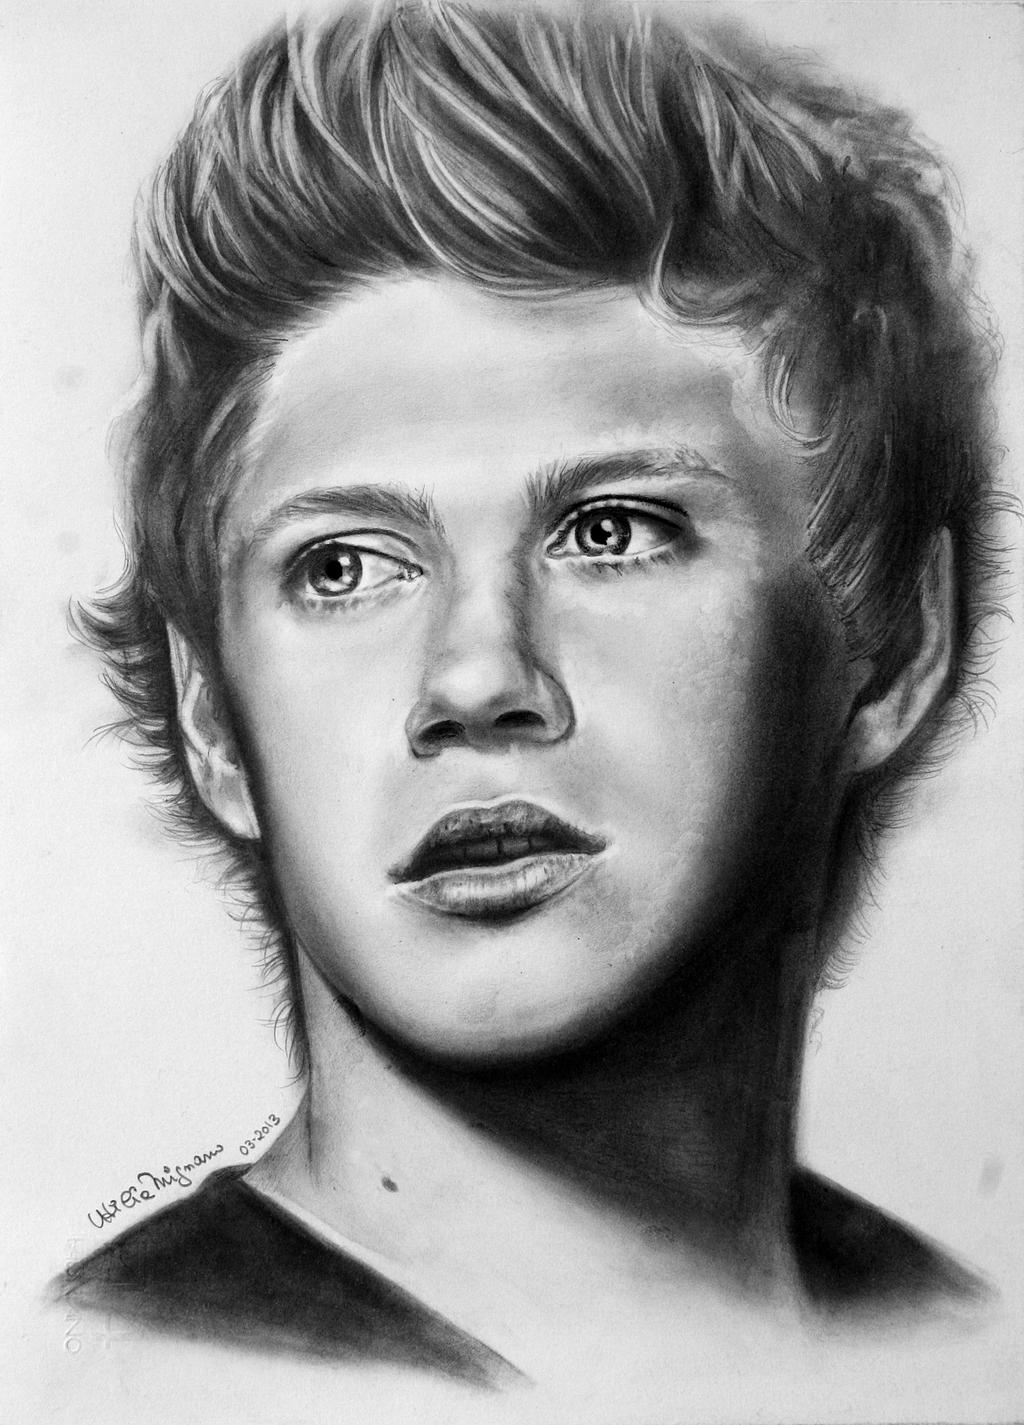 niall horan one direction by utiliamignano niall horan one direction by utiliamignano